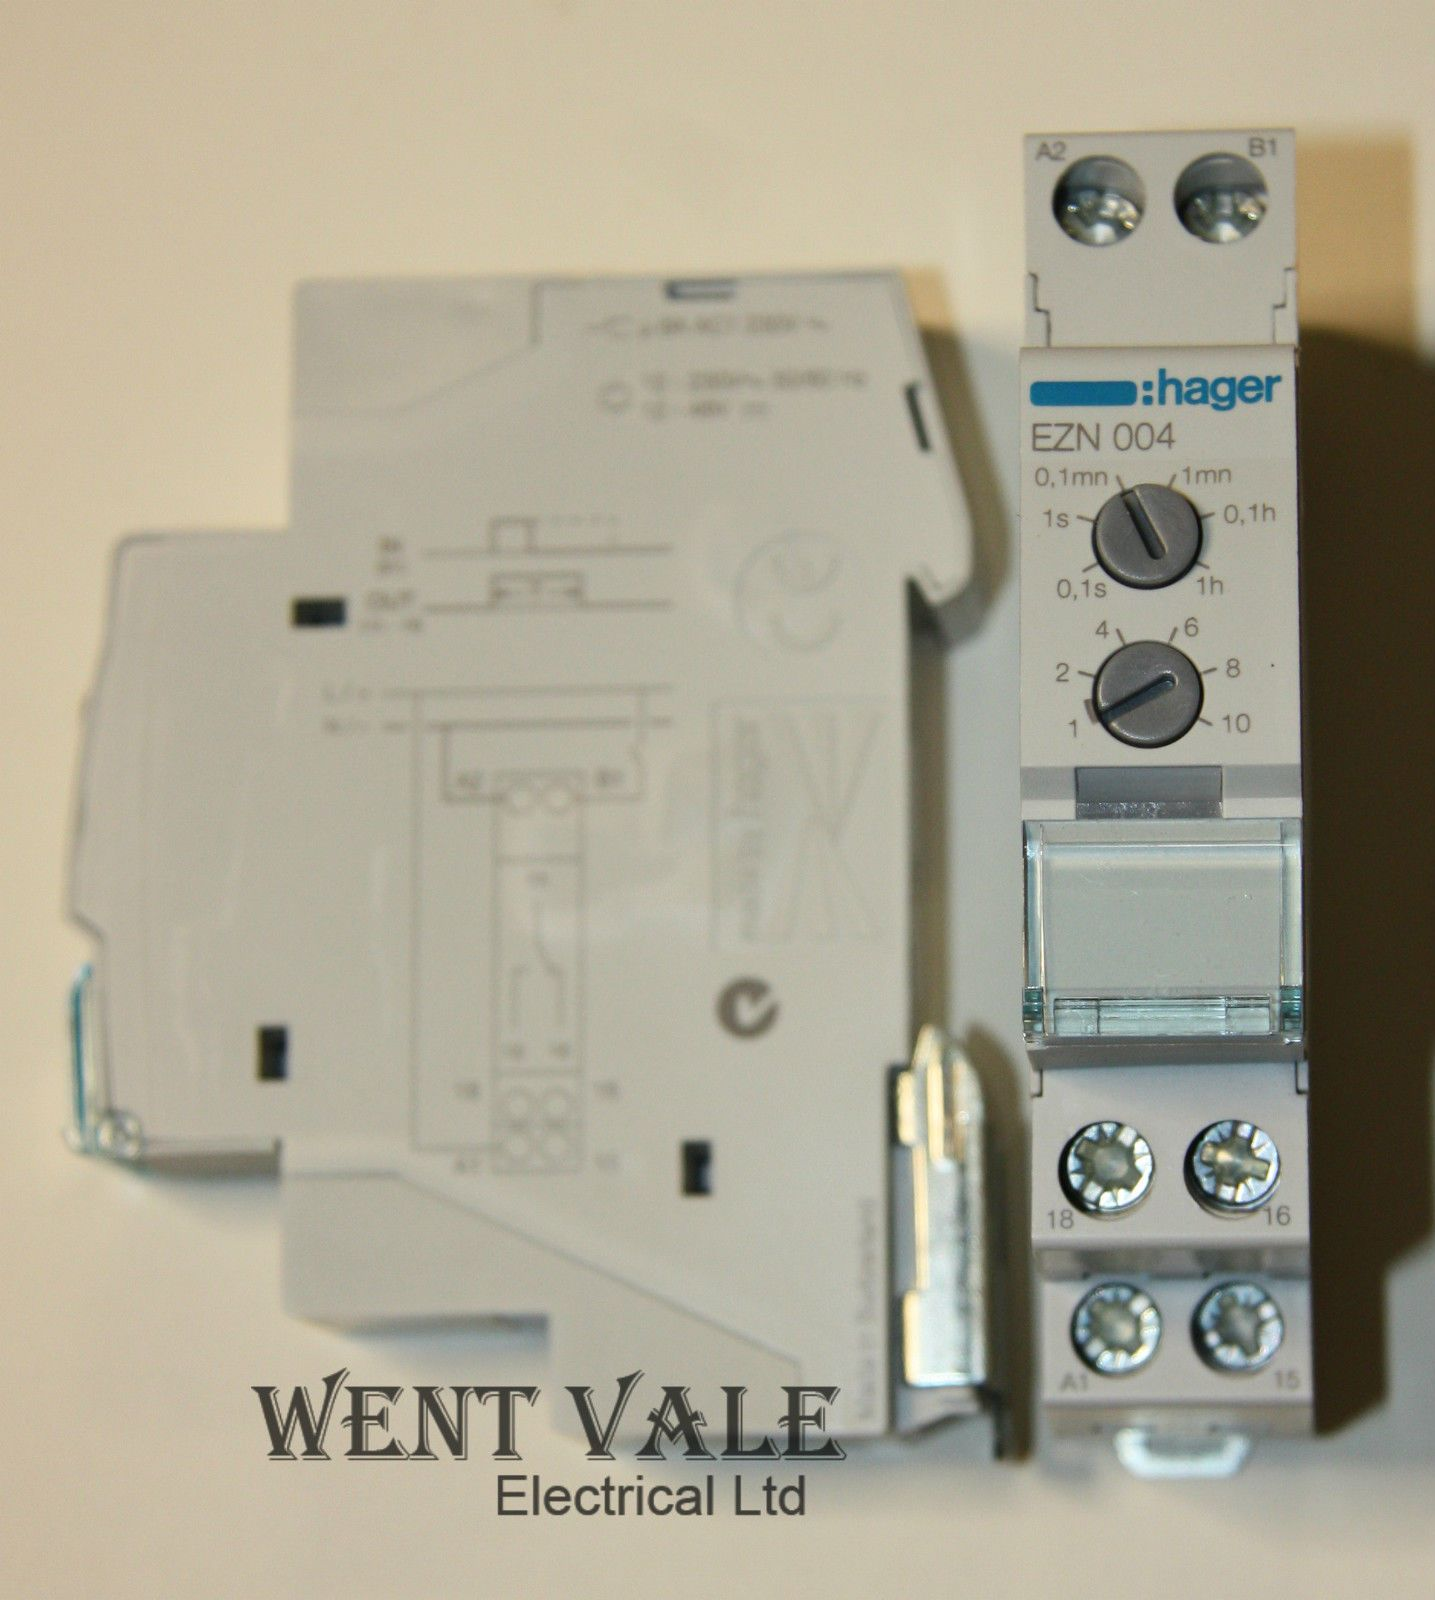 hager ezn004 delay timer relay new in box 11831 p hager fuse box timer hager wiring diagrams instruction changing a fuse in a hager fuse box at alyssarenee.co